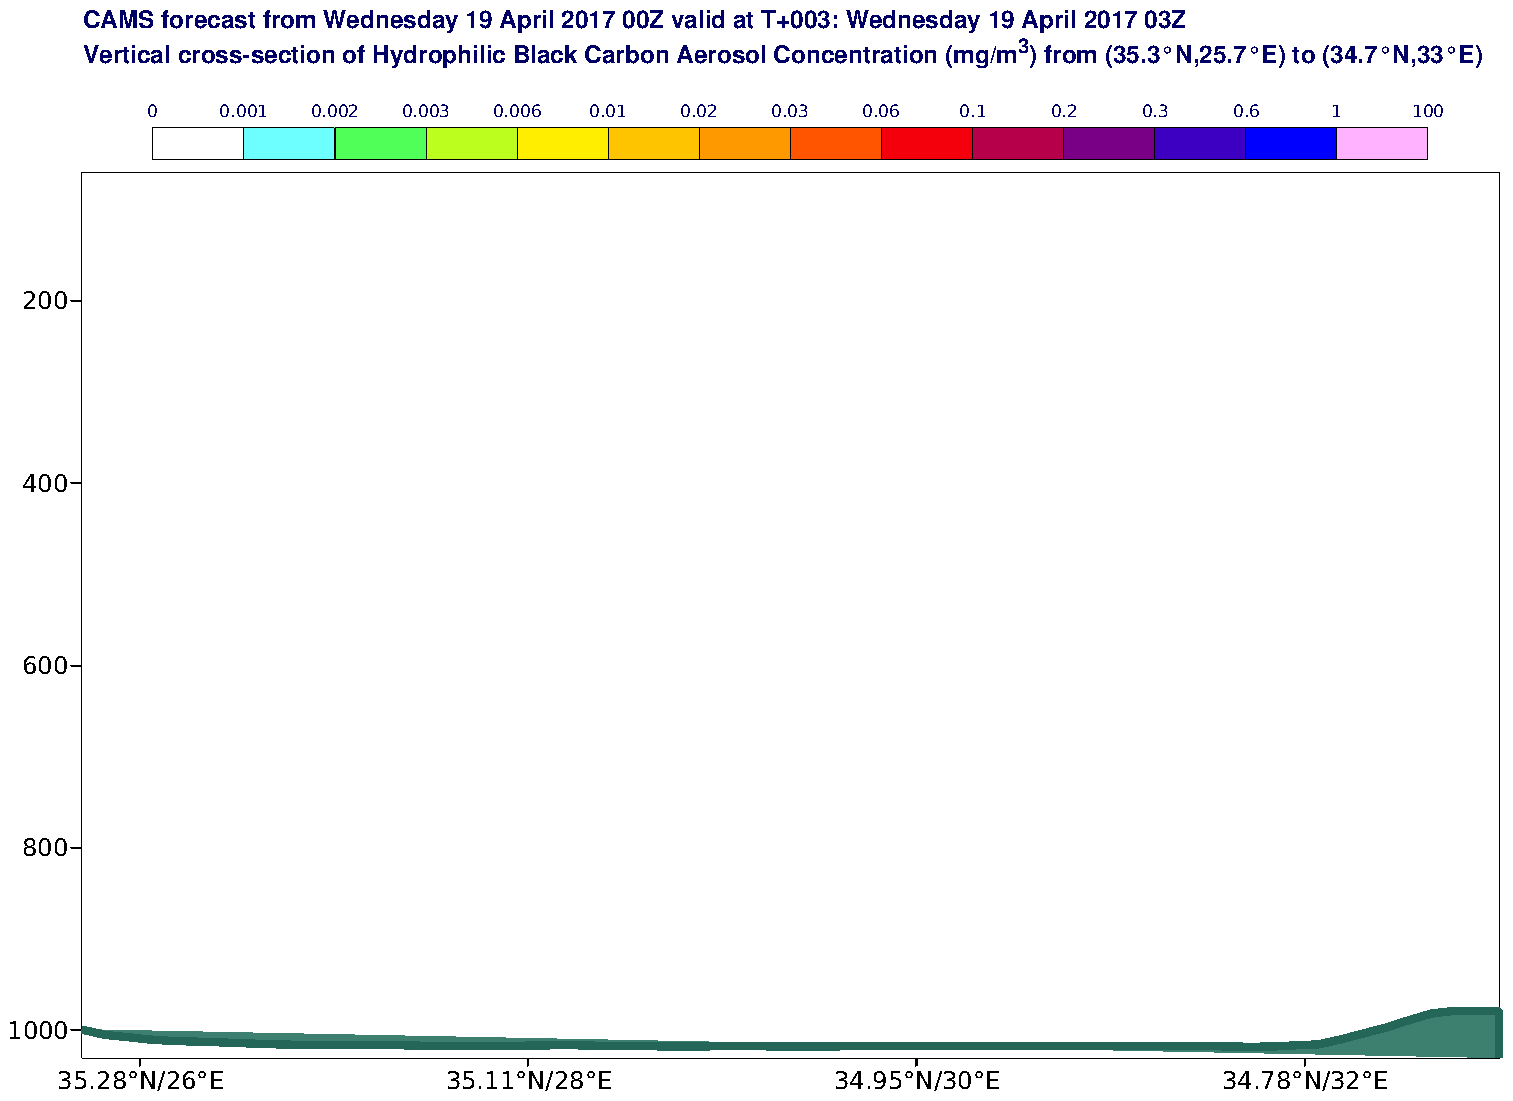 Vertical cross-section of Hydrophilic Black Carbon Aerosol Concentration (mg/m3) valid at T3 - 2017-04-19 03:00